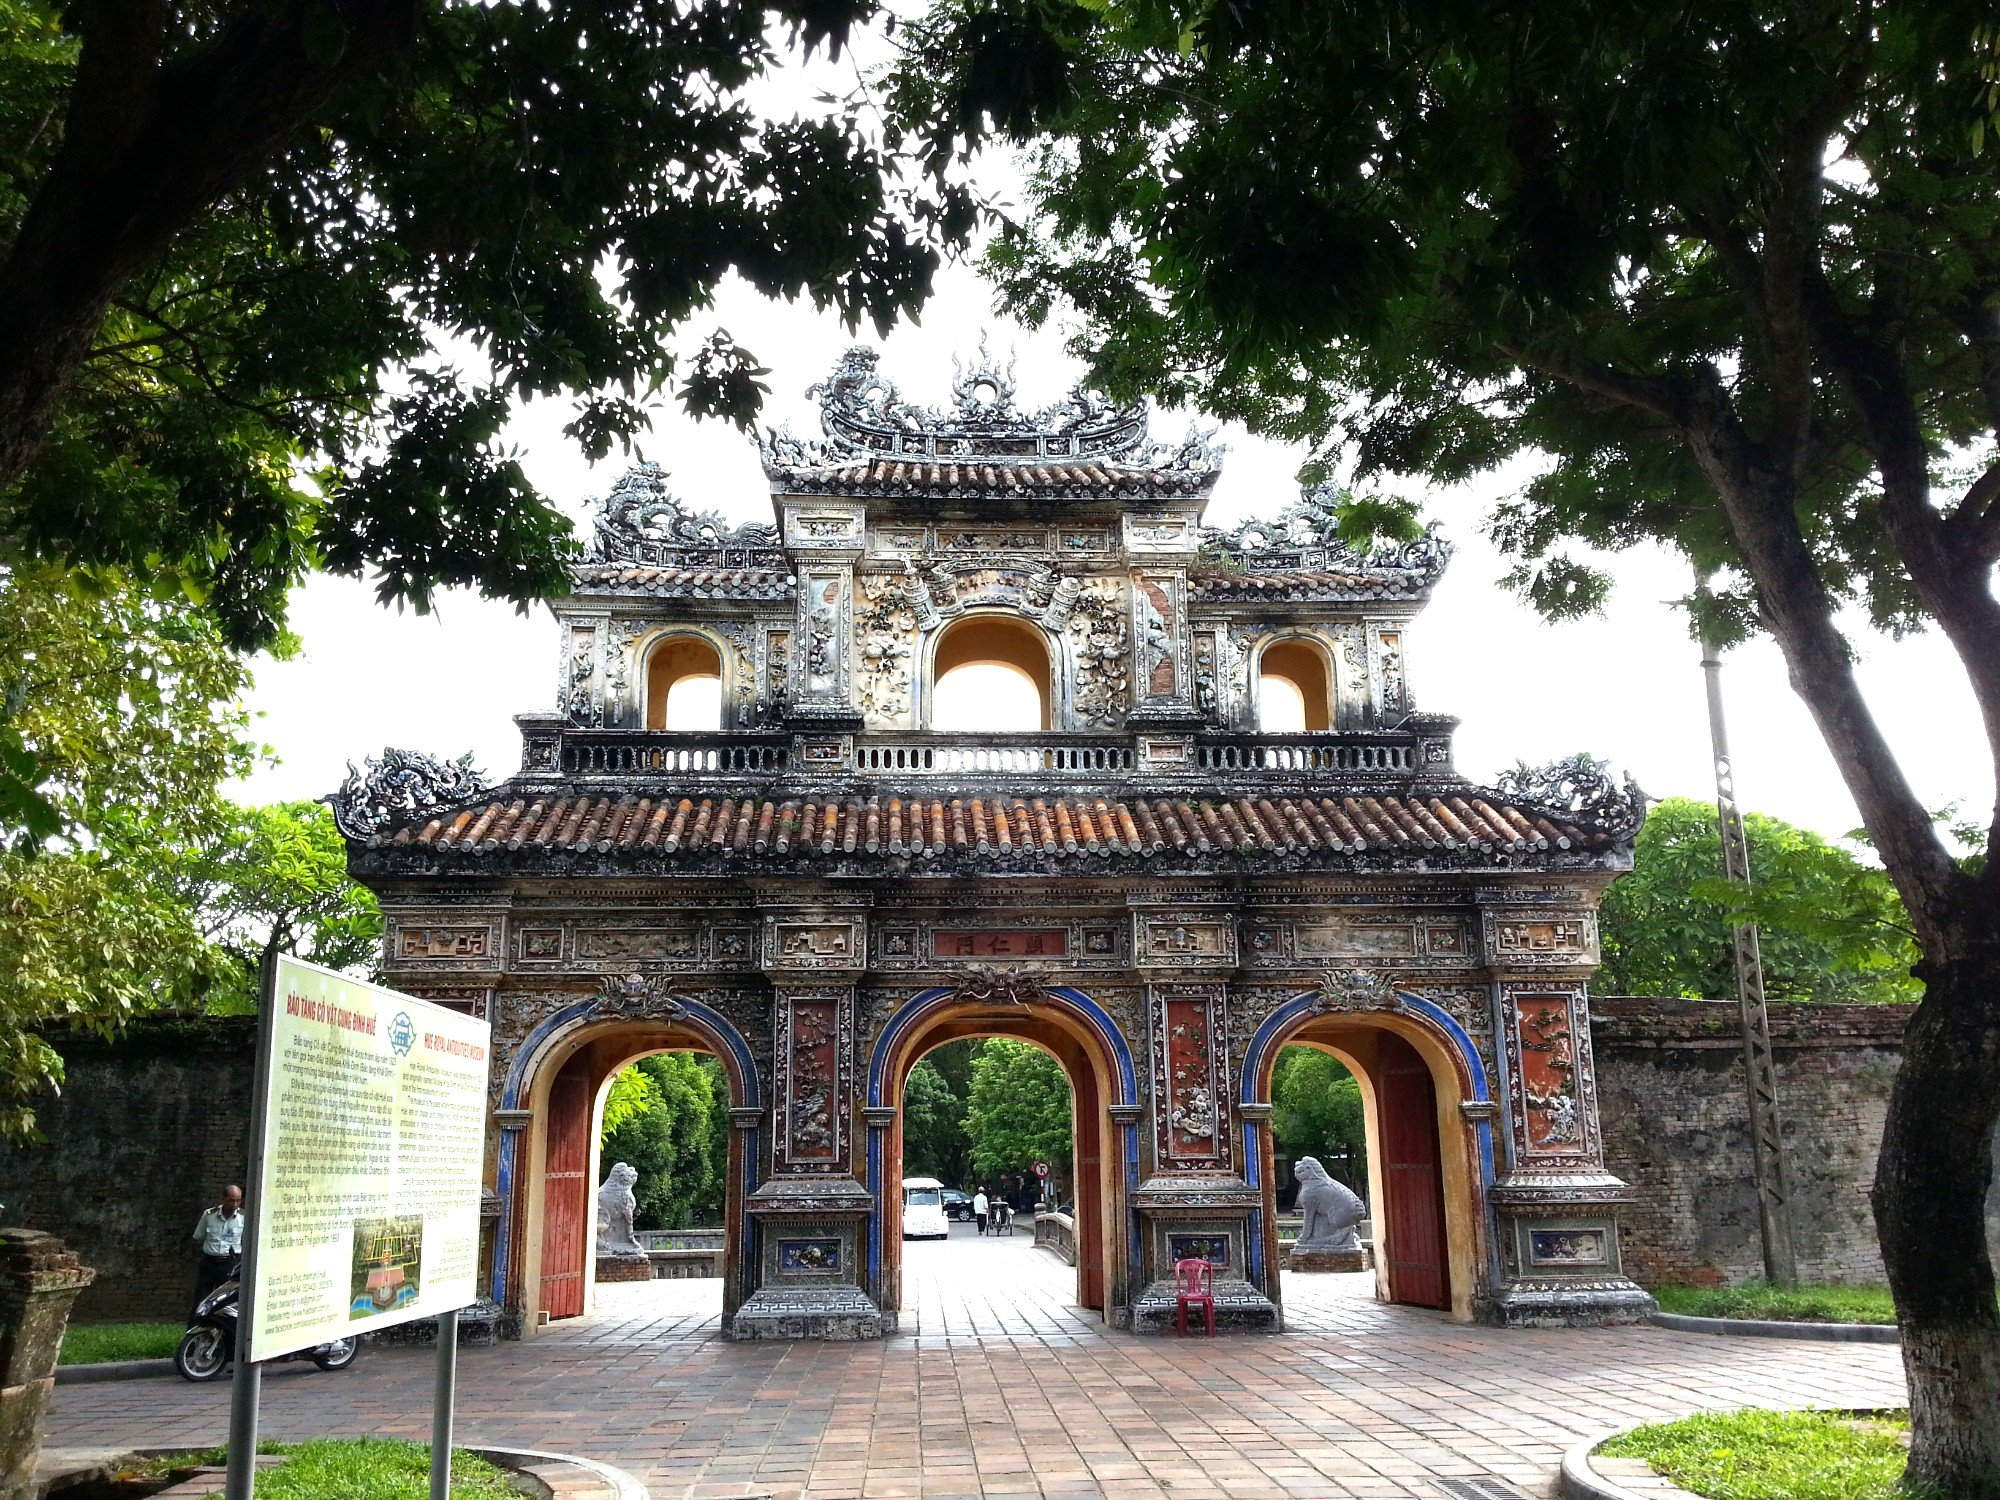 Gate at the Imperial Citadel in Hue